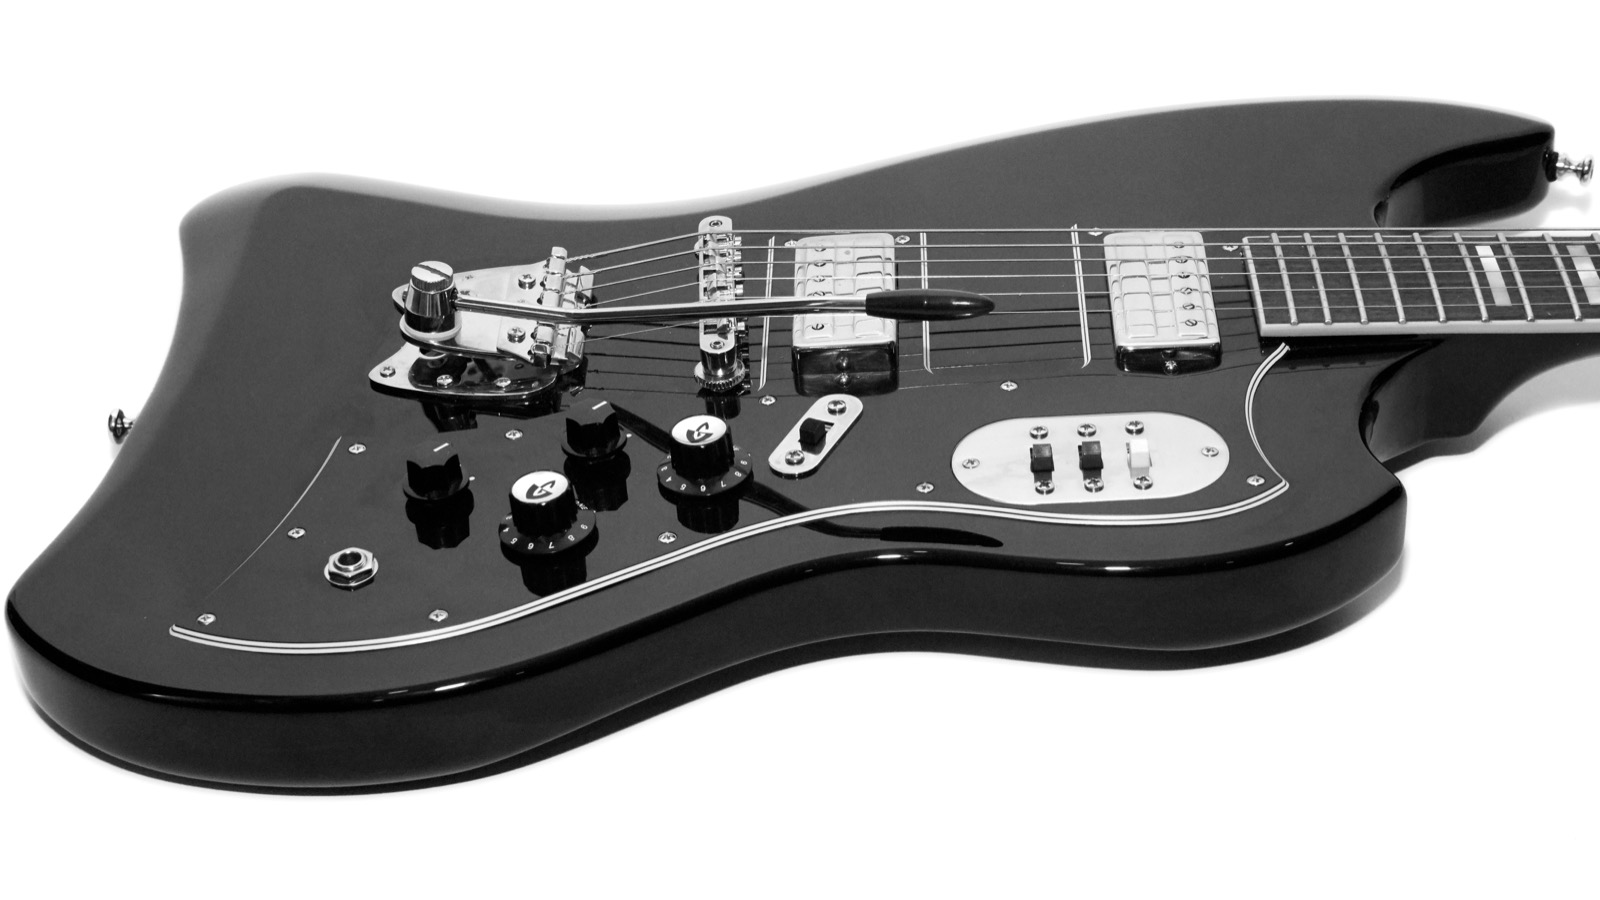 Guild Newark Street S200 T Bird Gads Ramblings Bridge Tremolo Fender Semi Updown Chrome I Should Point Out That Some Of The Pictures On This Page Are In Black And White For No Other Reason Than Like Way Guitar Looks